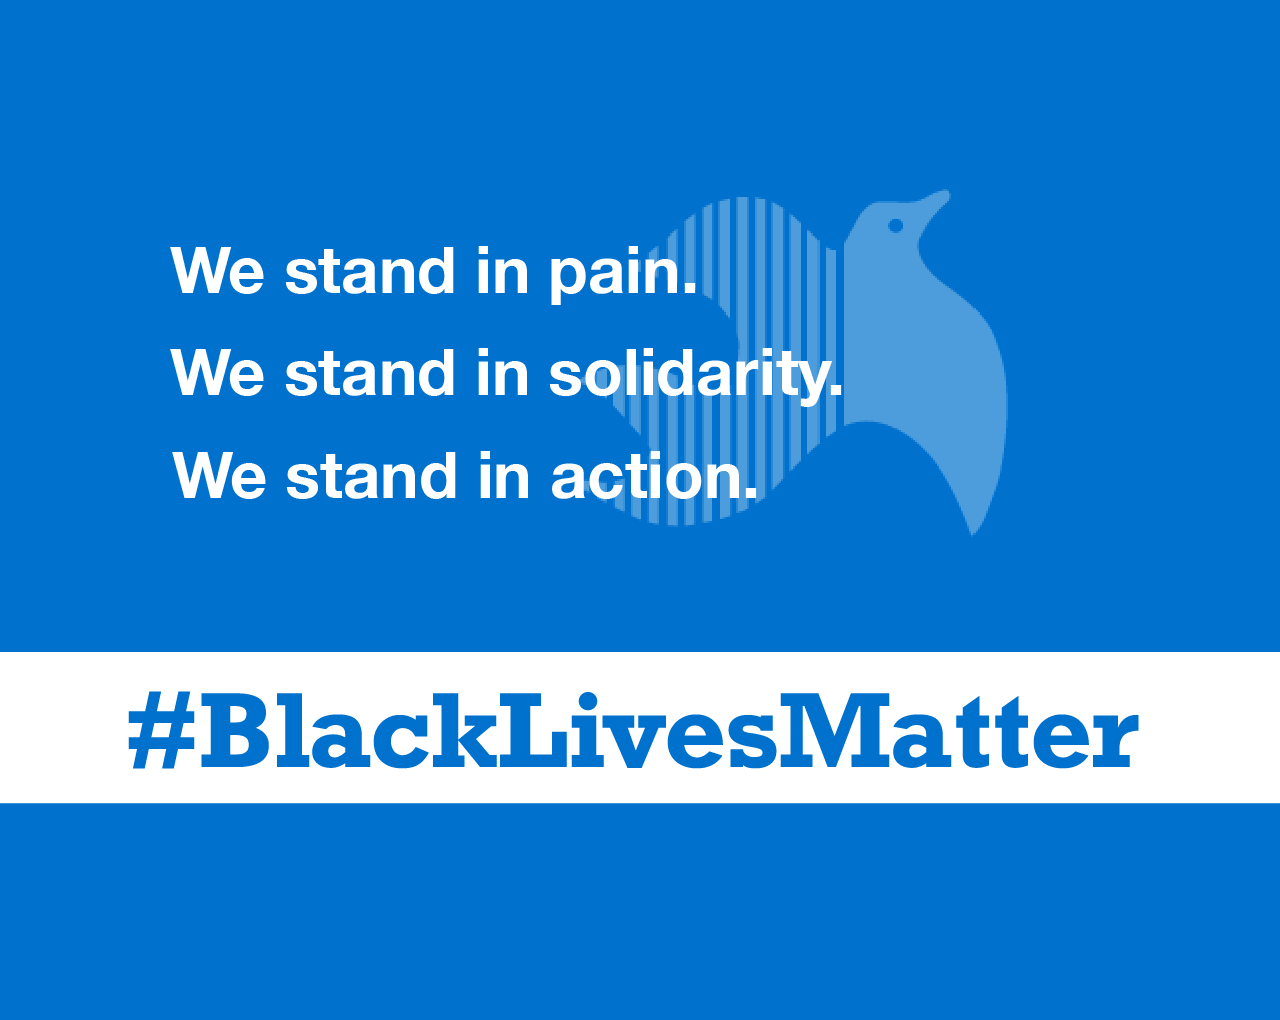 We stand in pain. We stand in solidarity. We stand in action.